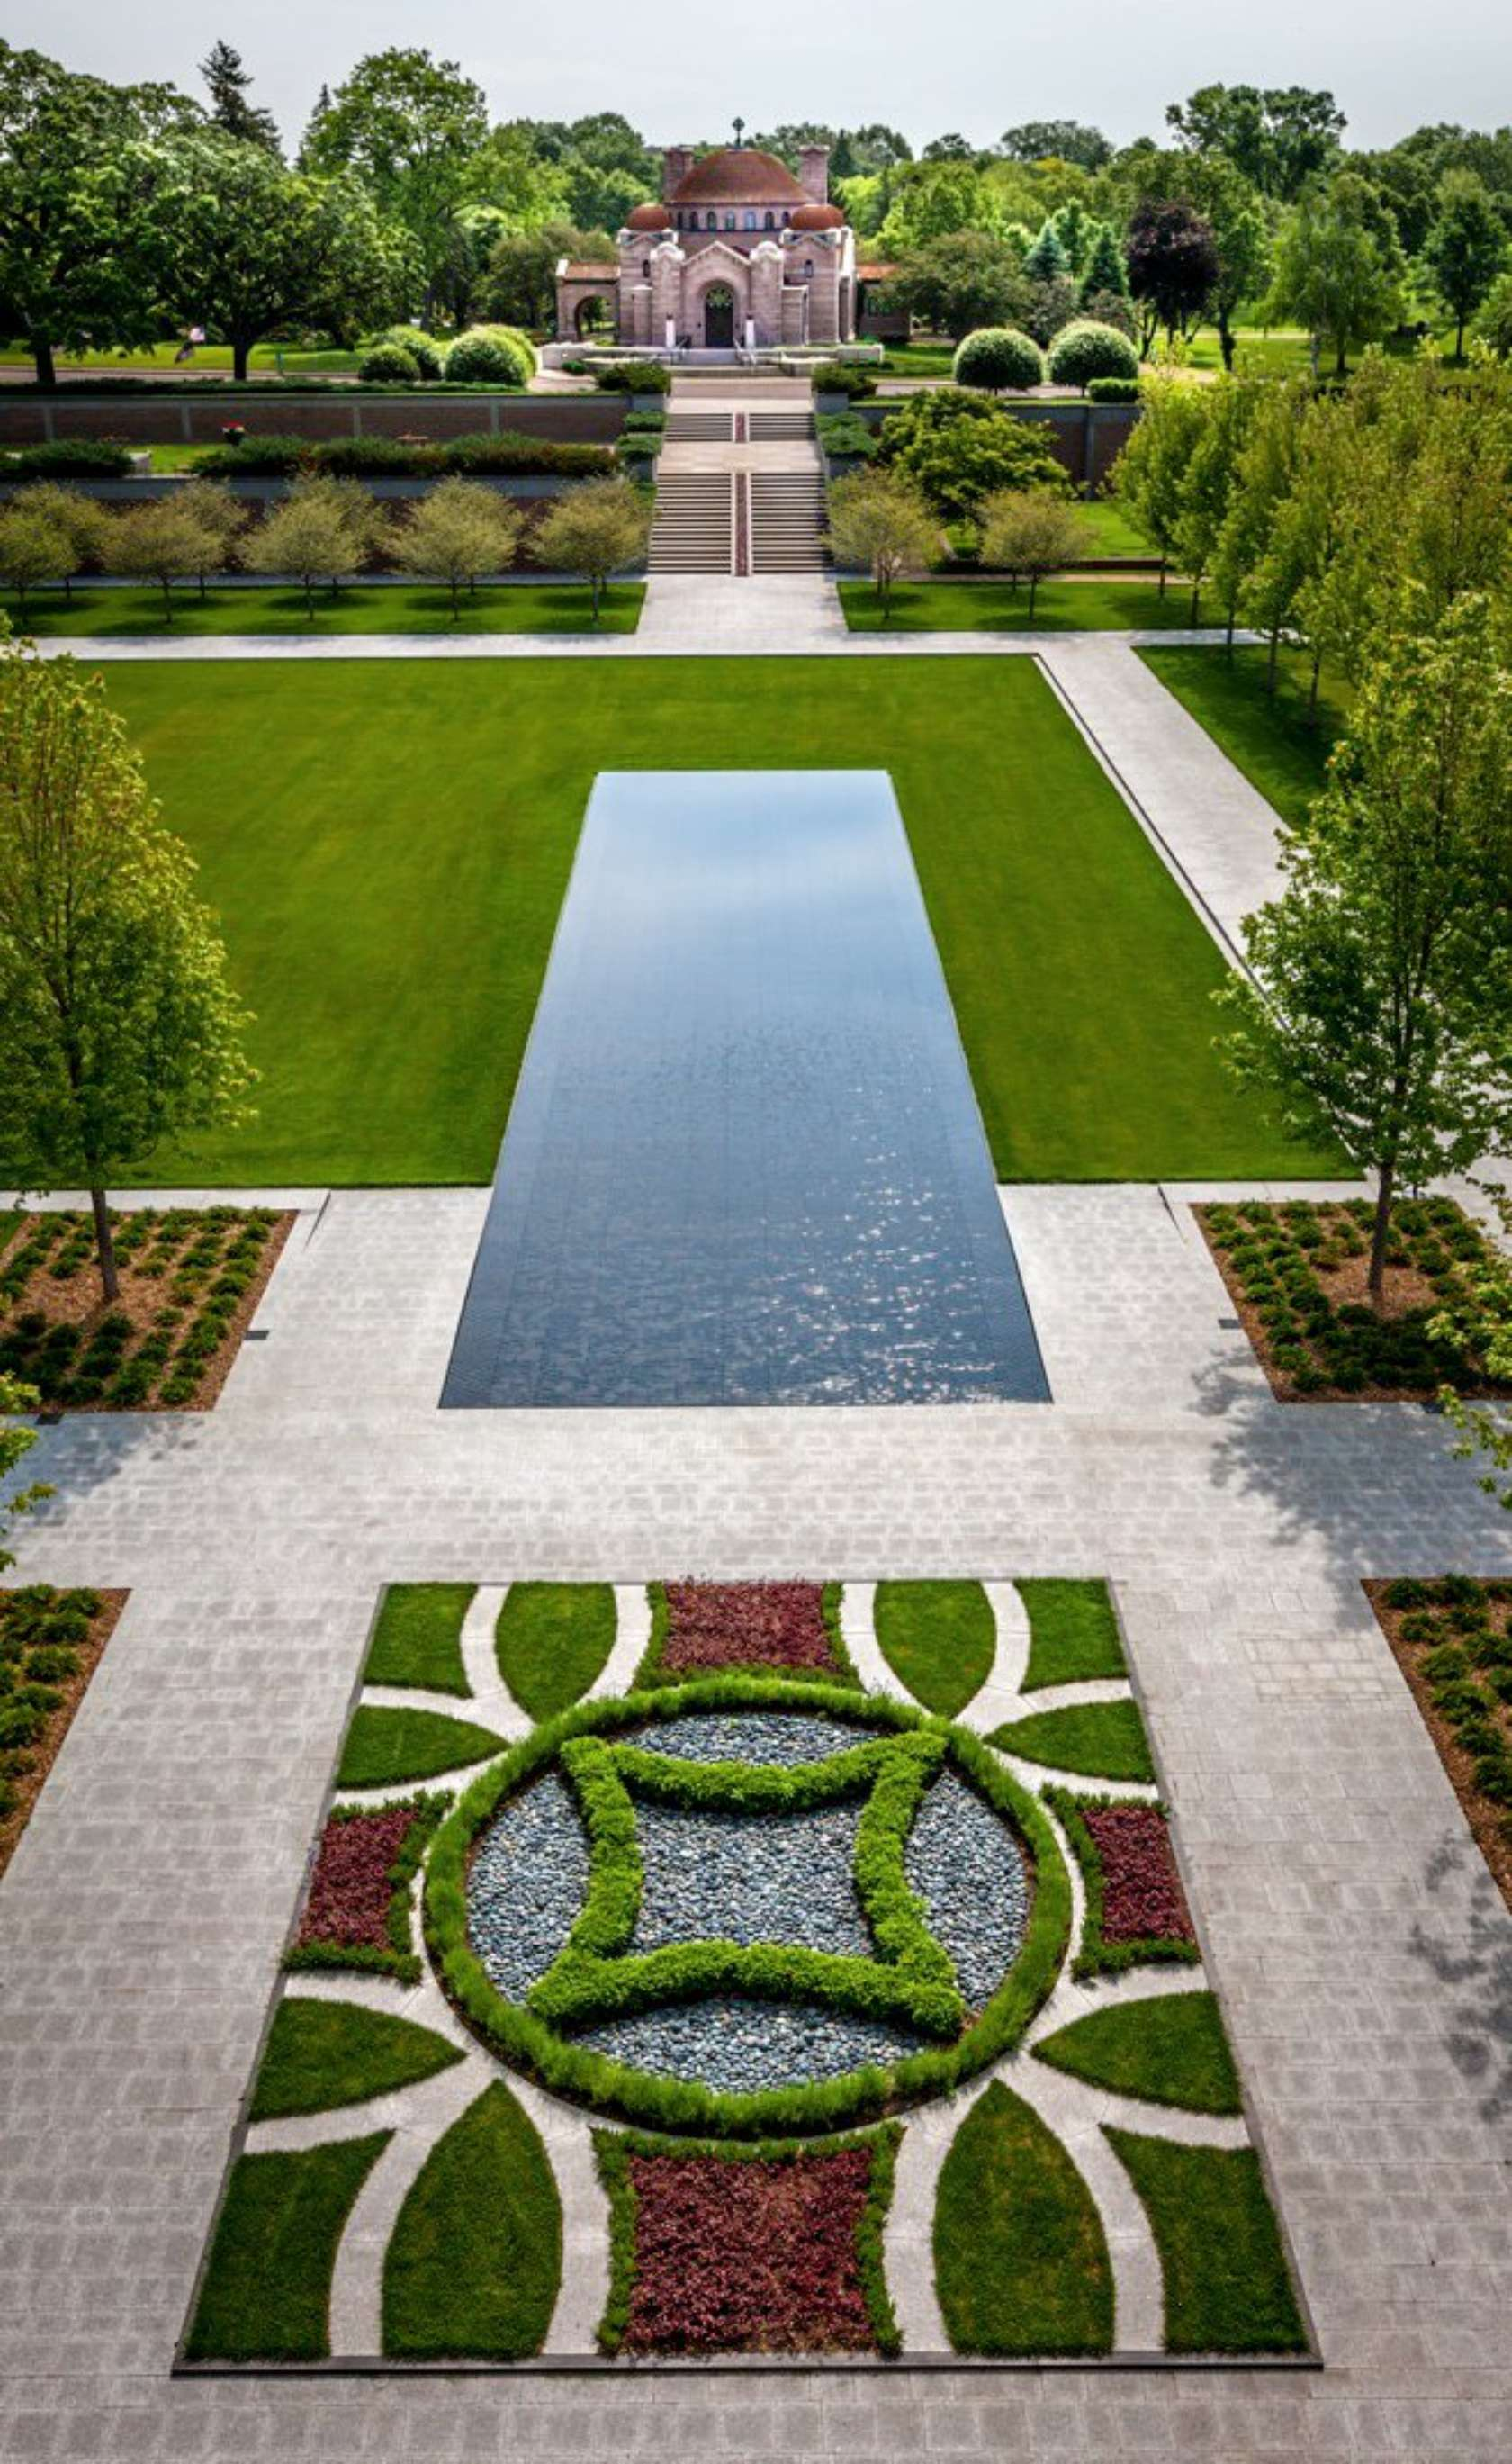 Garden mausoleum at lakewood cemetery architizer Mausoleum design